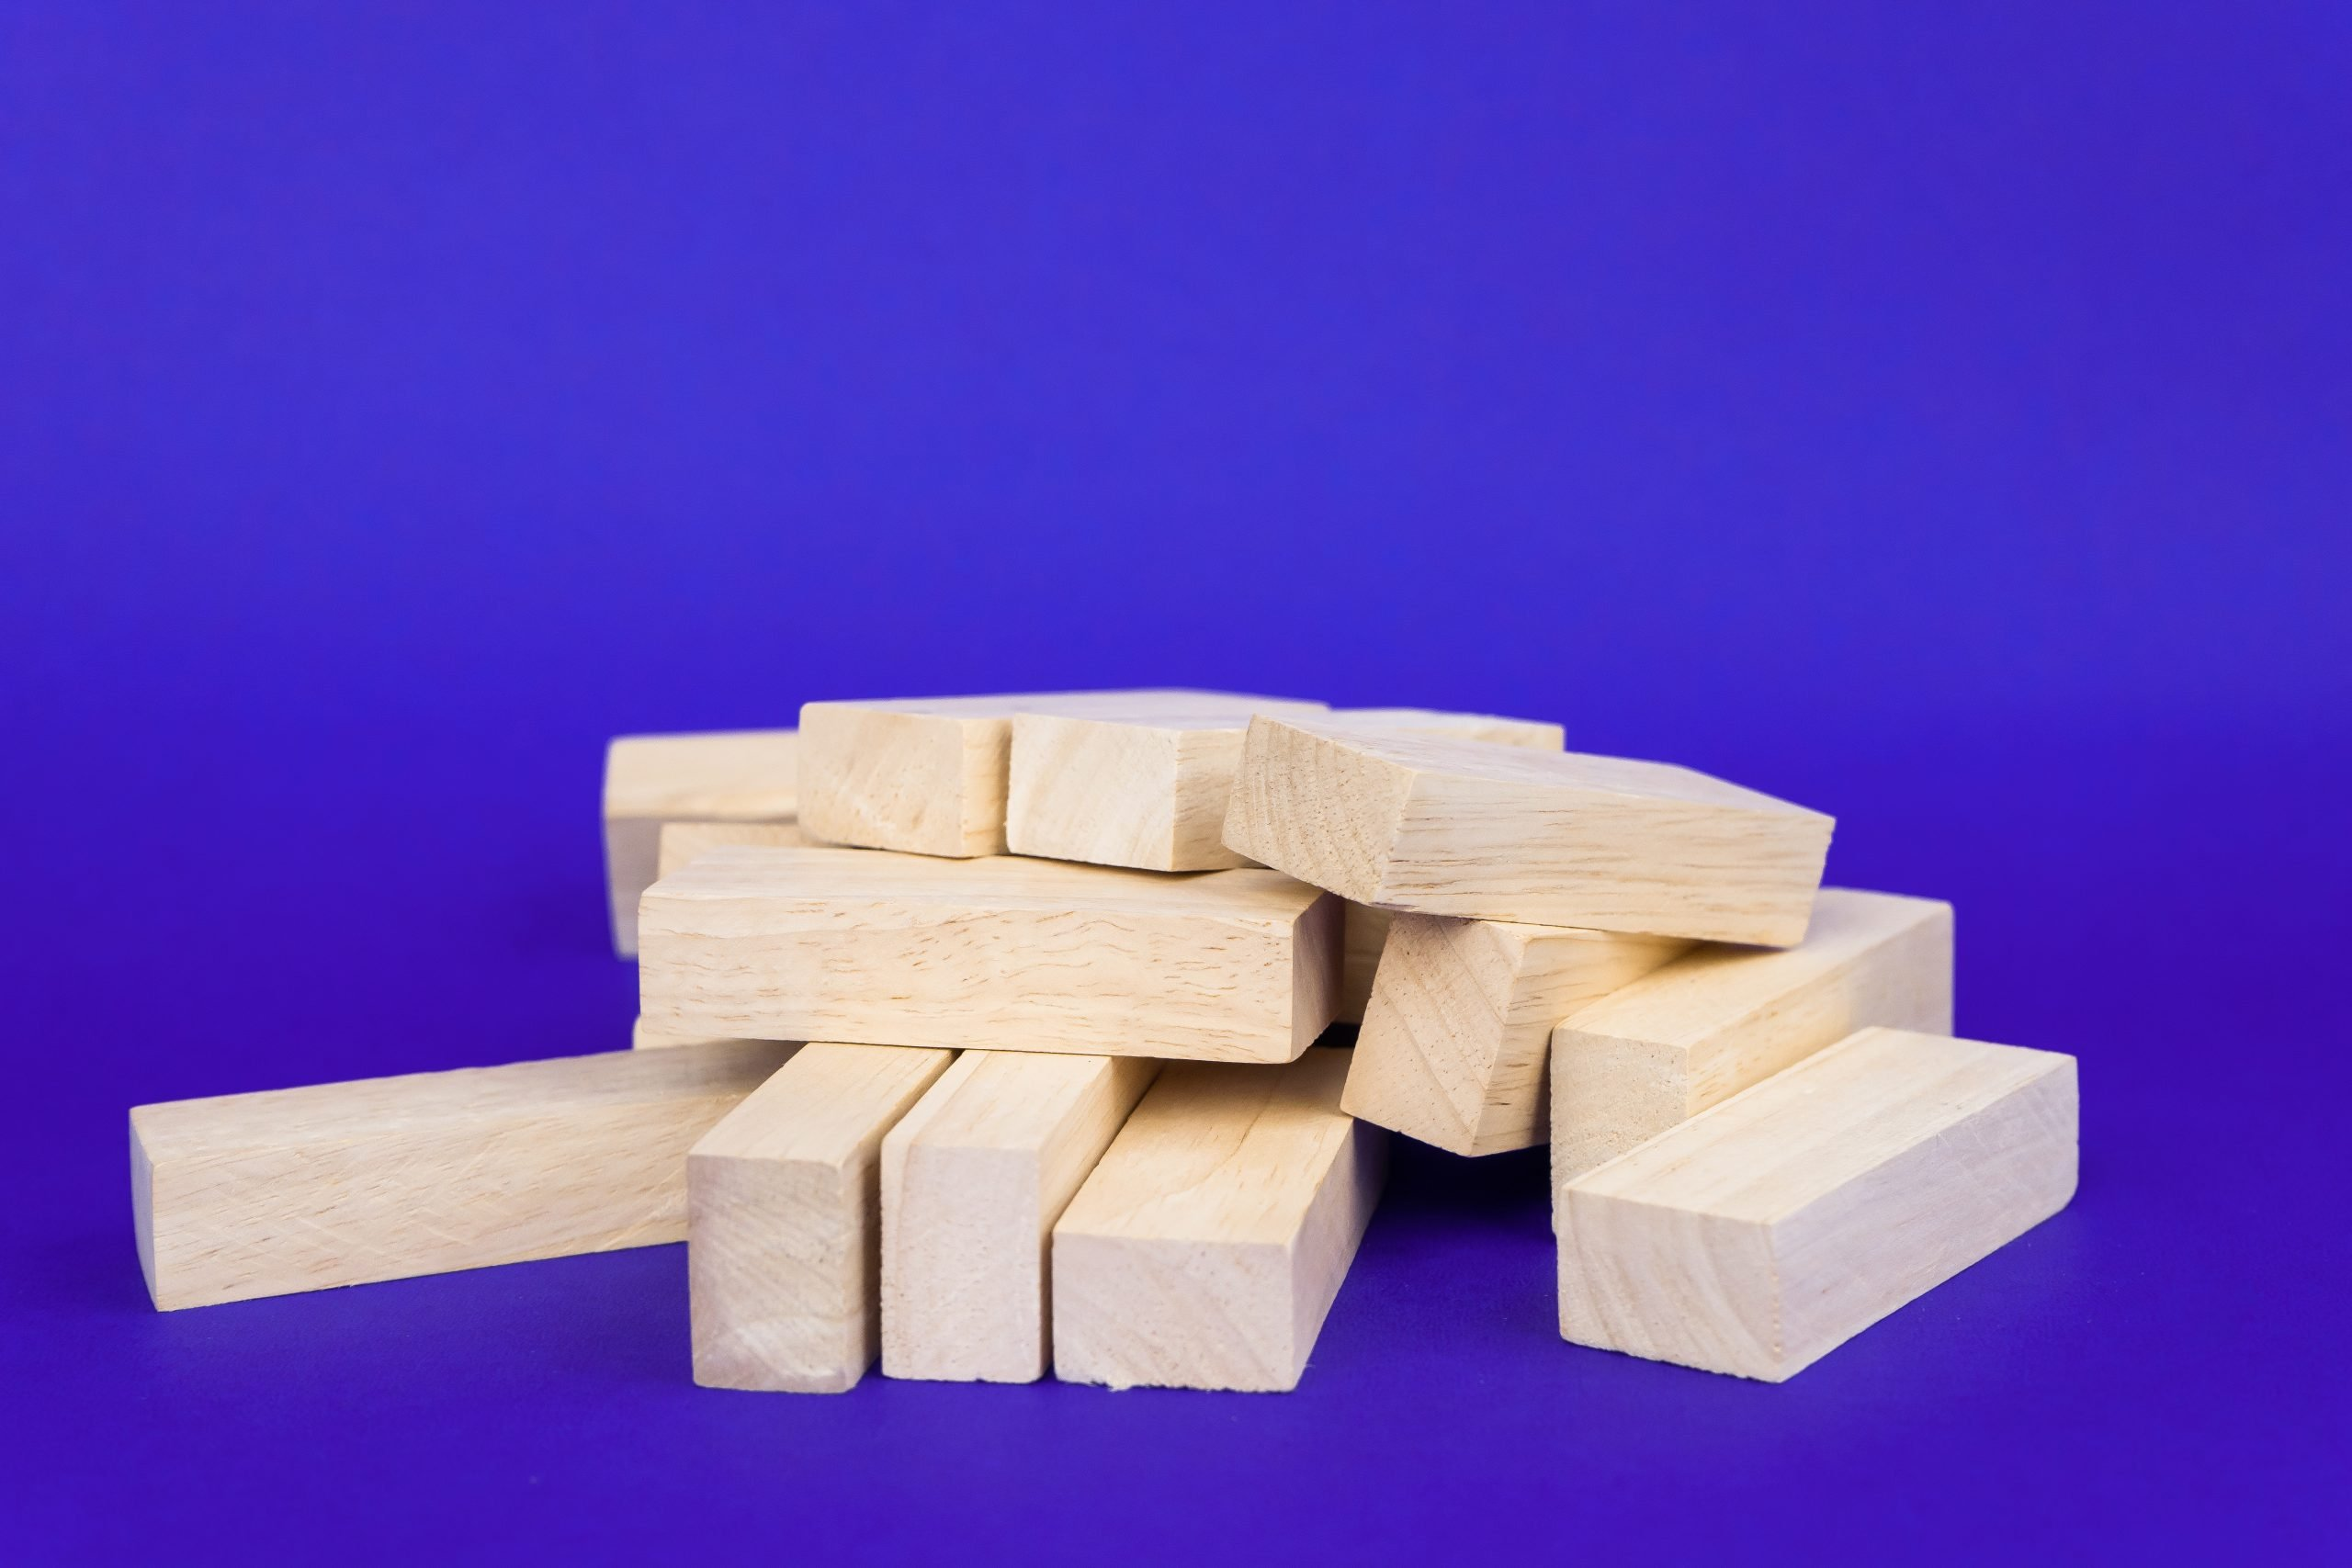 Jenga Pieces on Violet Background